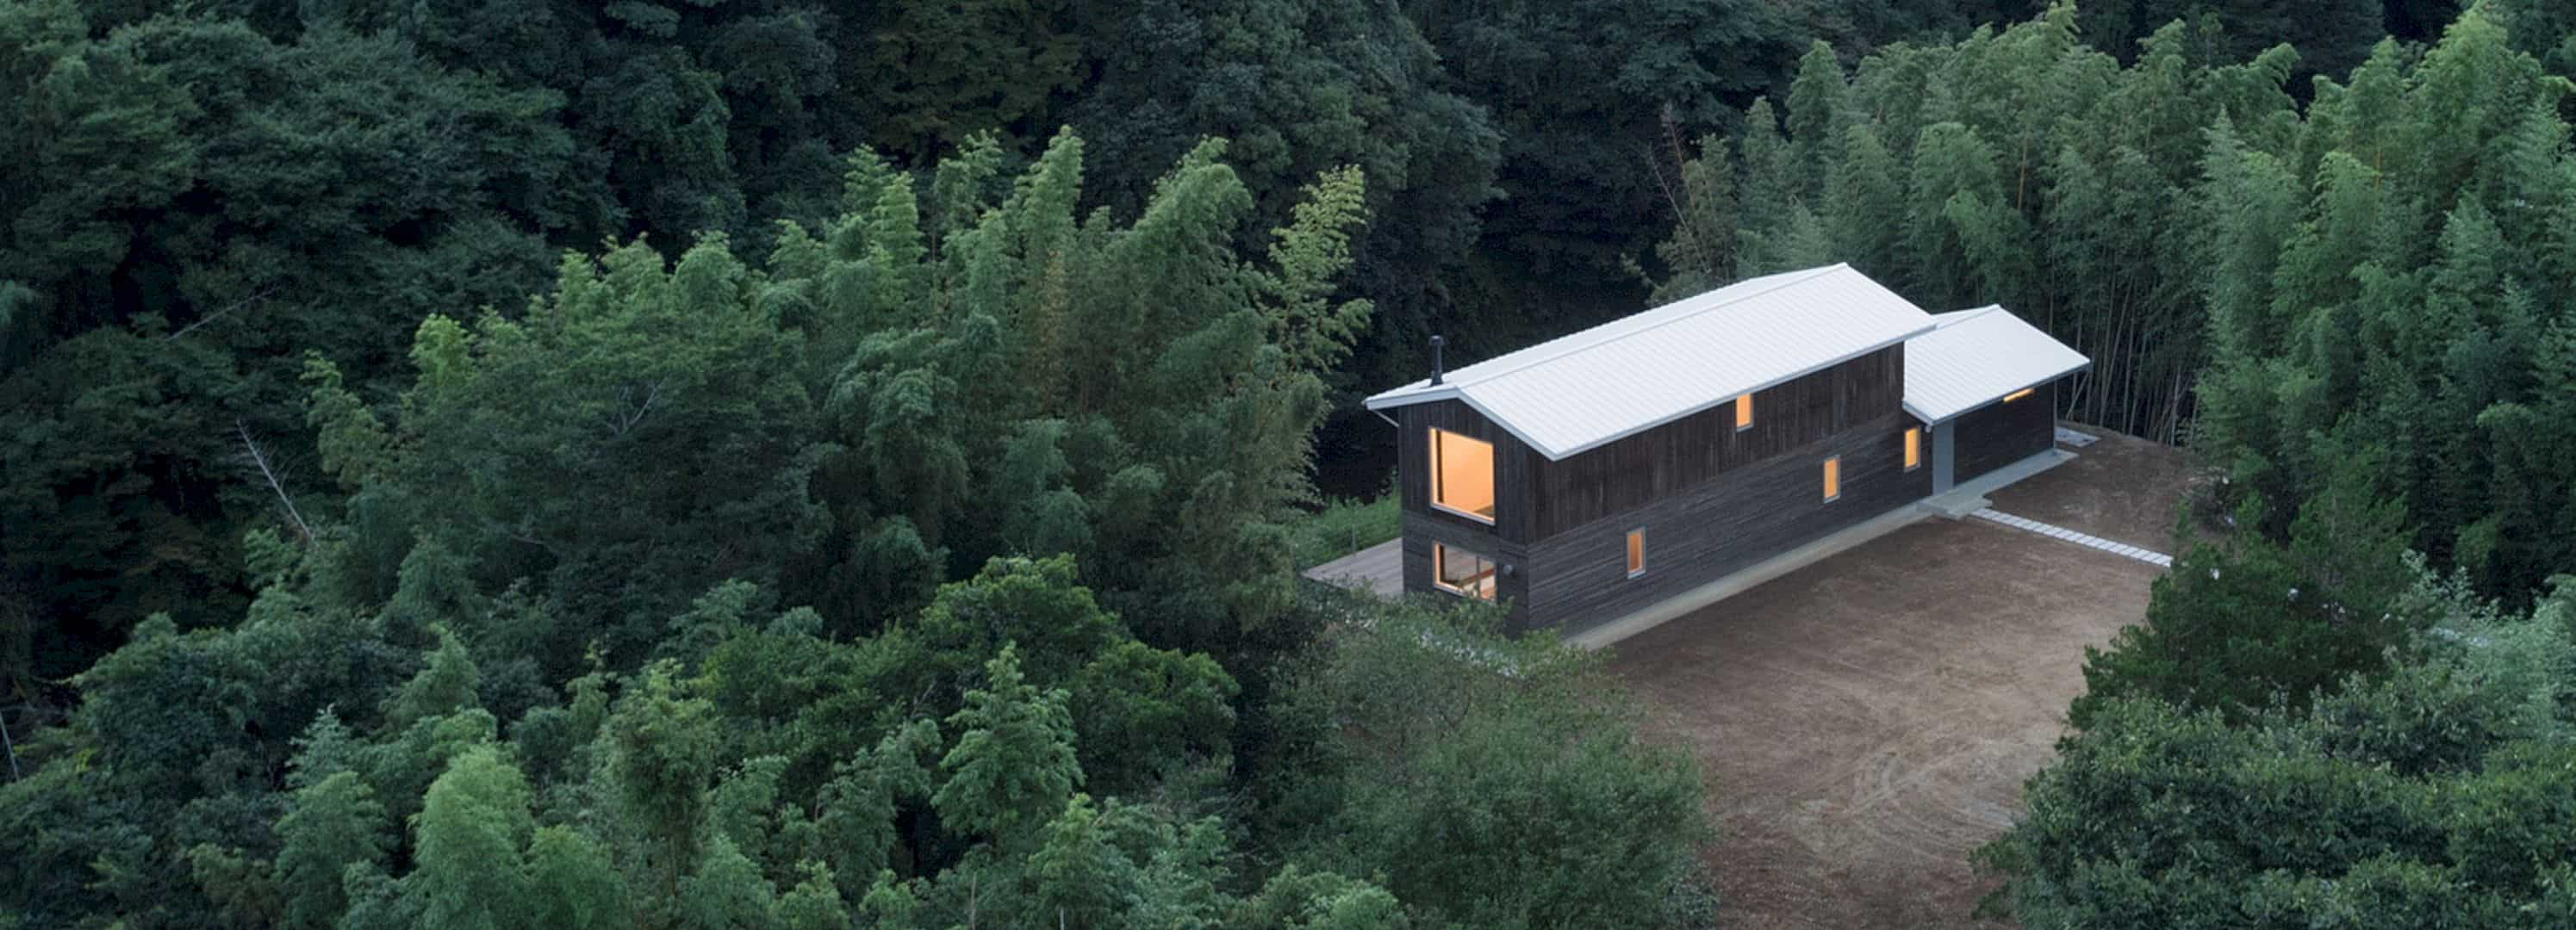 A Wooden House Surrounded By Nature In Chiba 10